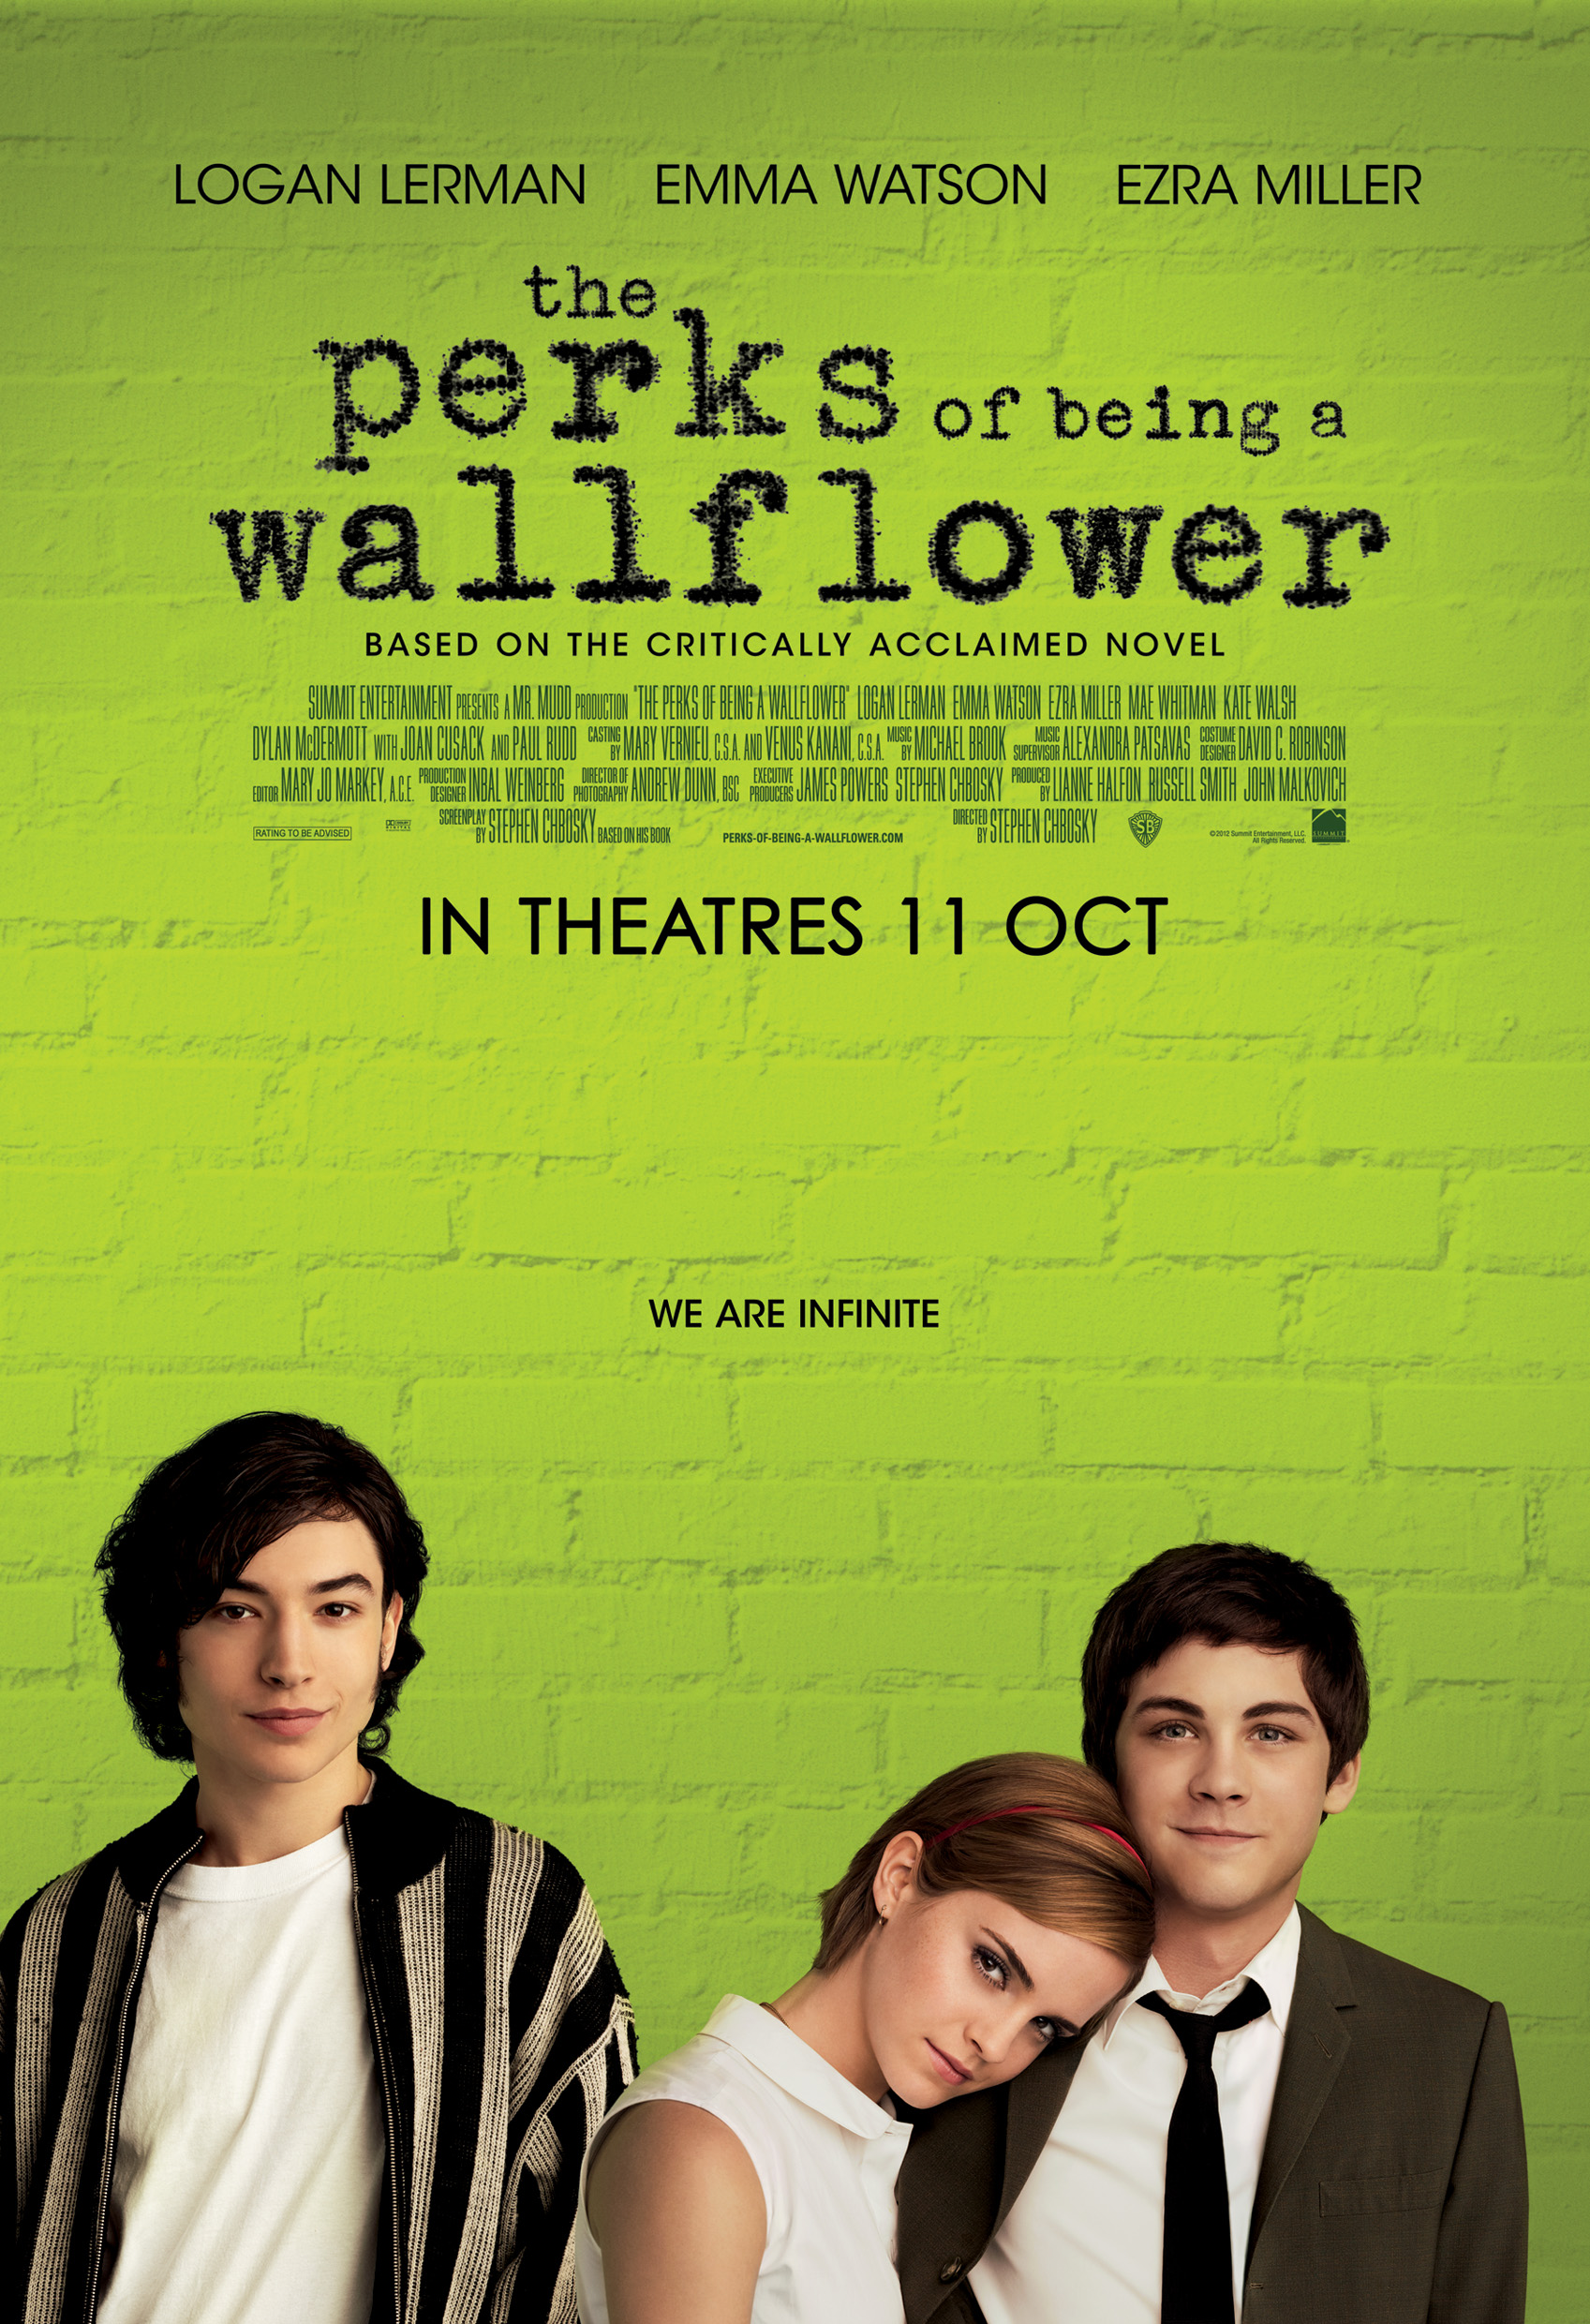 Perks-of-Being-a-Wallflower-A4-poster.jpg